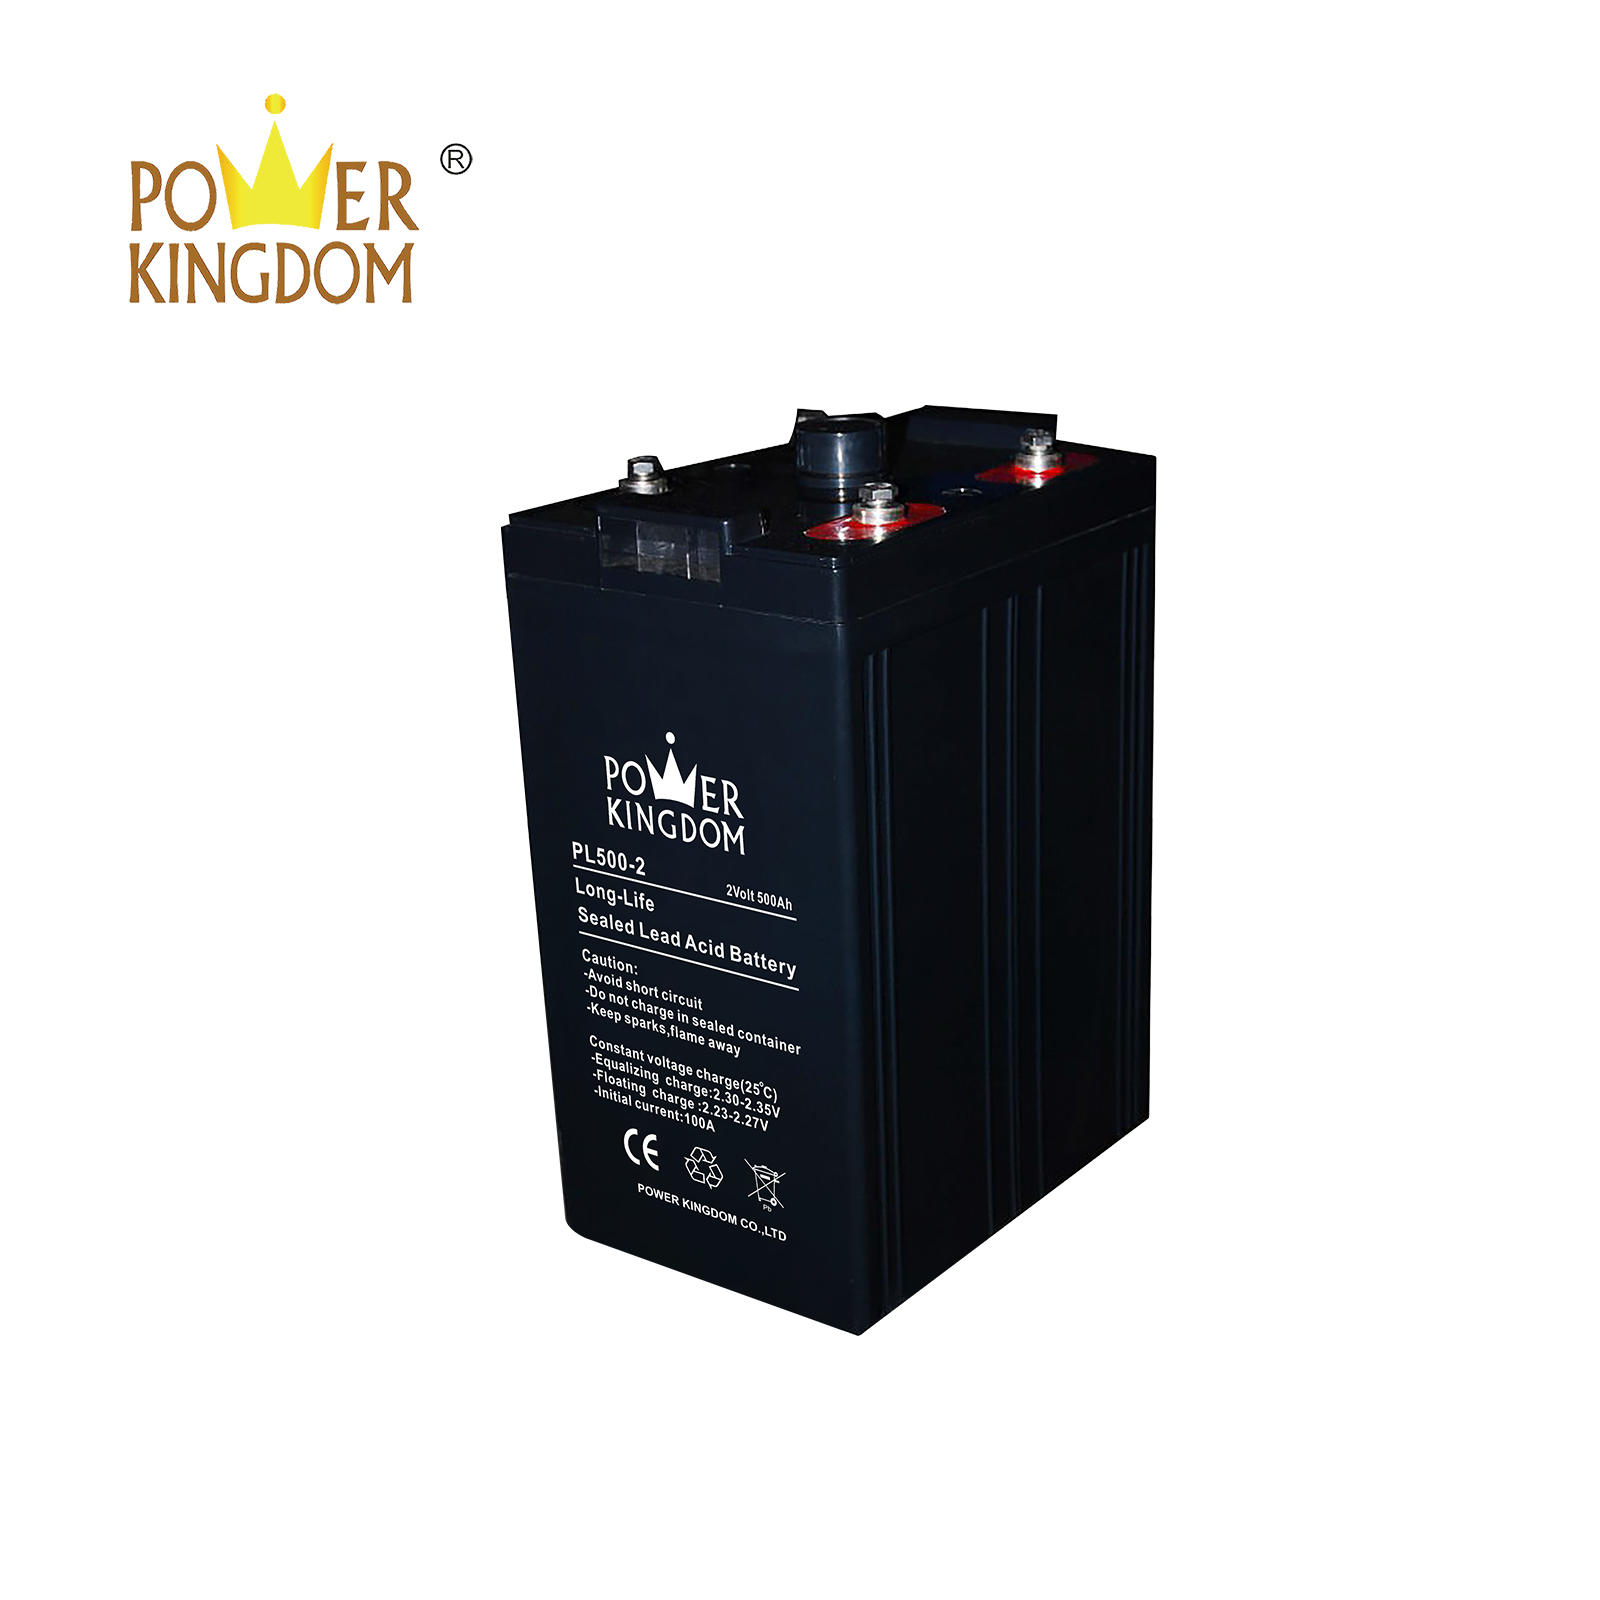 Power Kingdom 2v 500ah sealed lead acid battery with long life